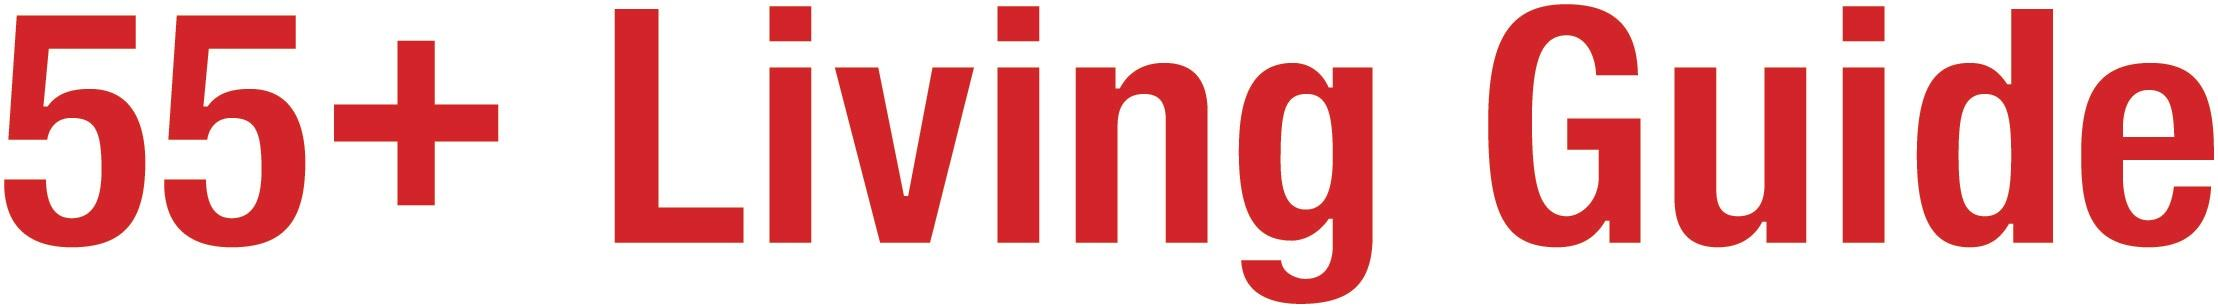 55+ Living Guide Logo in a red, sans serif font